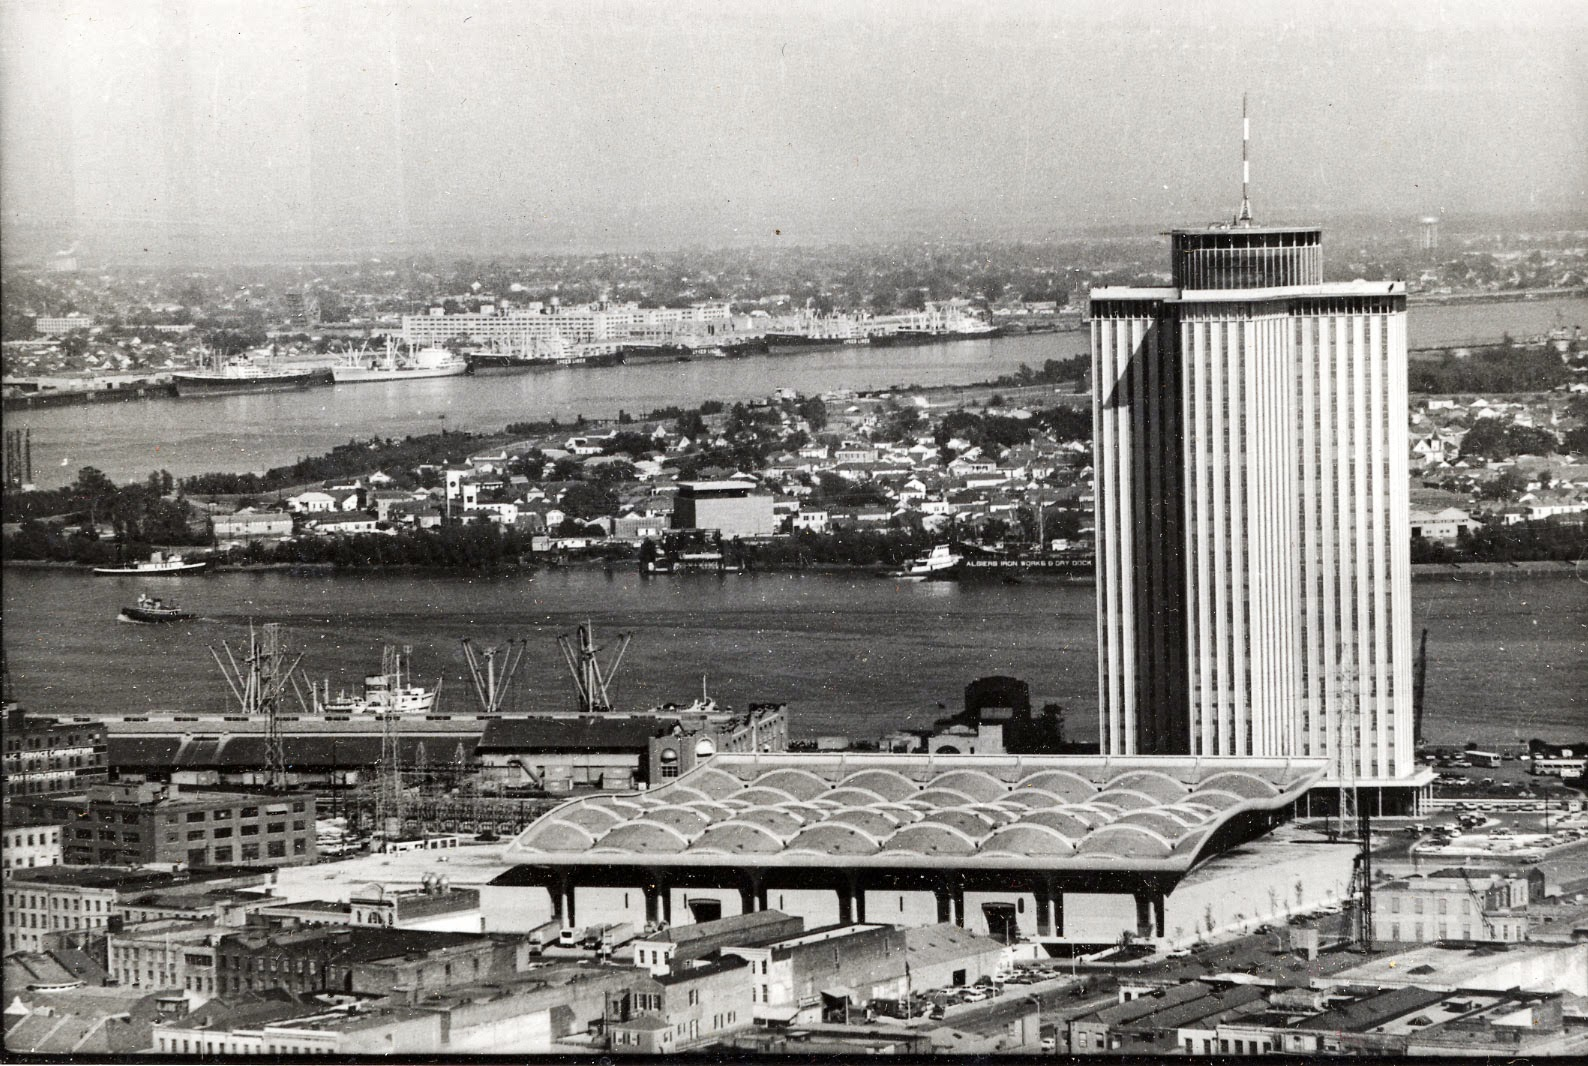 The building as it looked in 1969-1970. Matt Anderson, photographer. Mississippi River from Plaza Tower, New Orleans, LA. Circa 1970. Southeastern Architectural Archive, Special Collections Division, Tulane University Libraries.